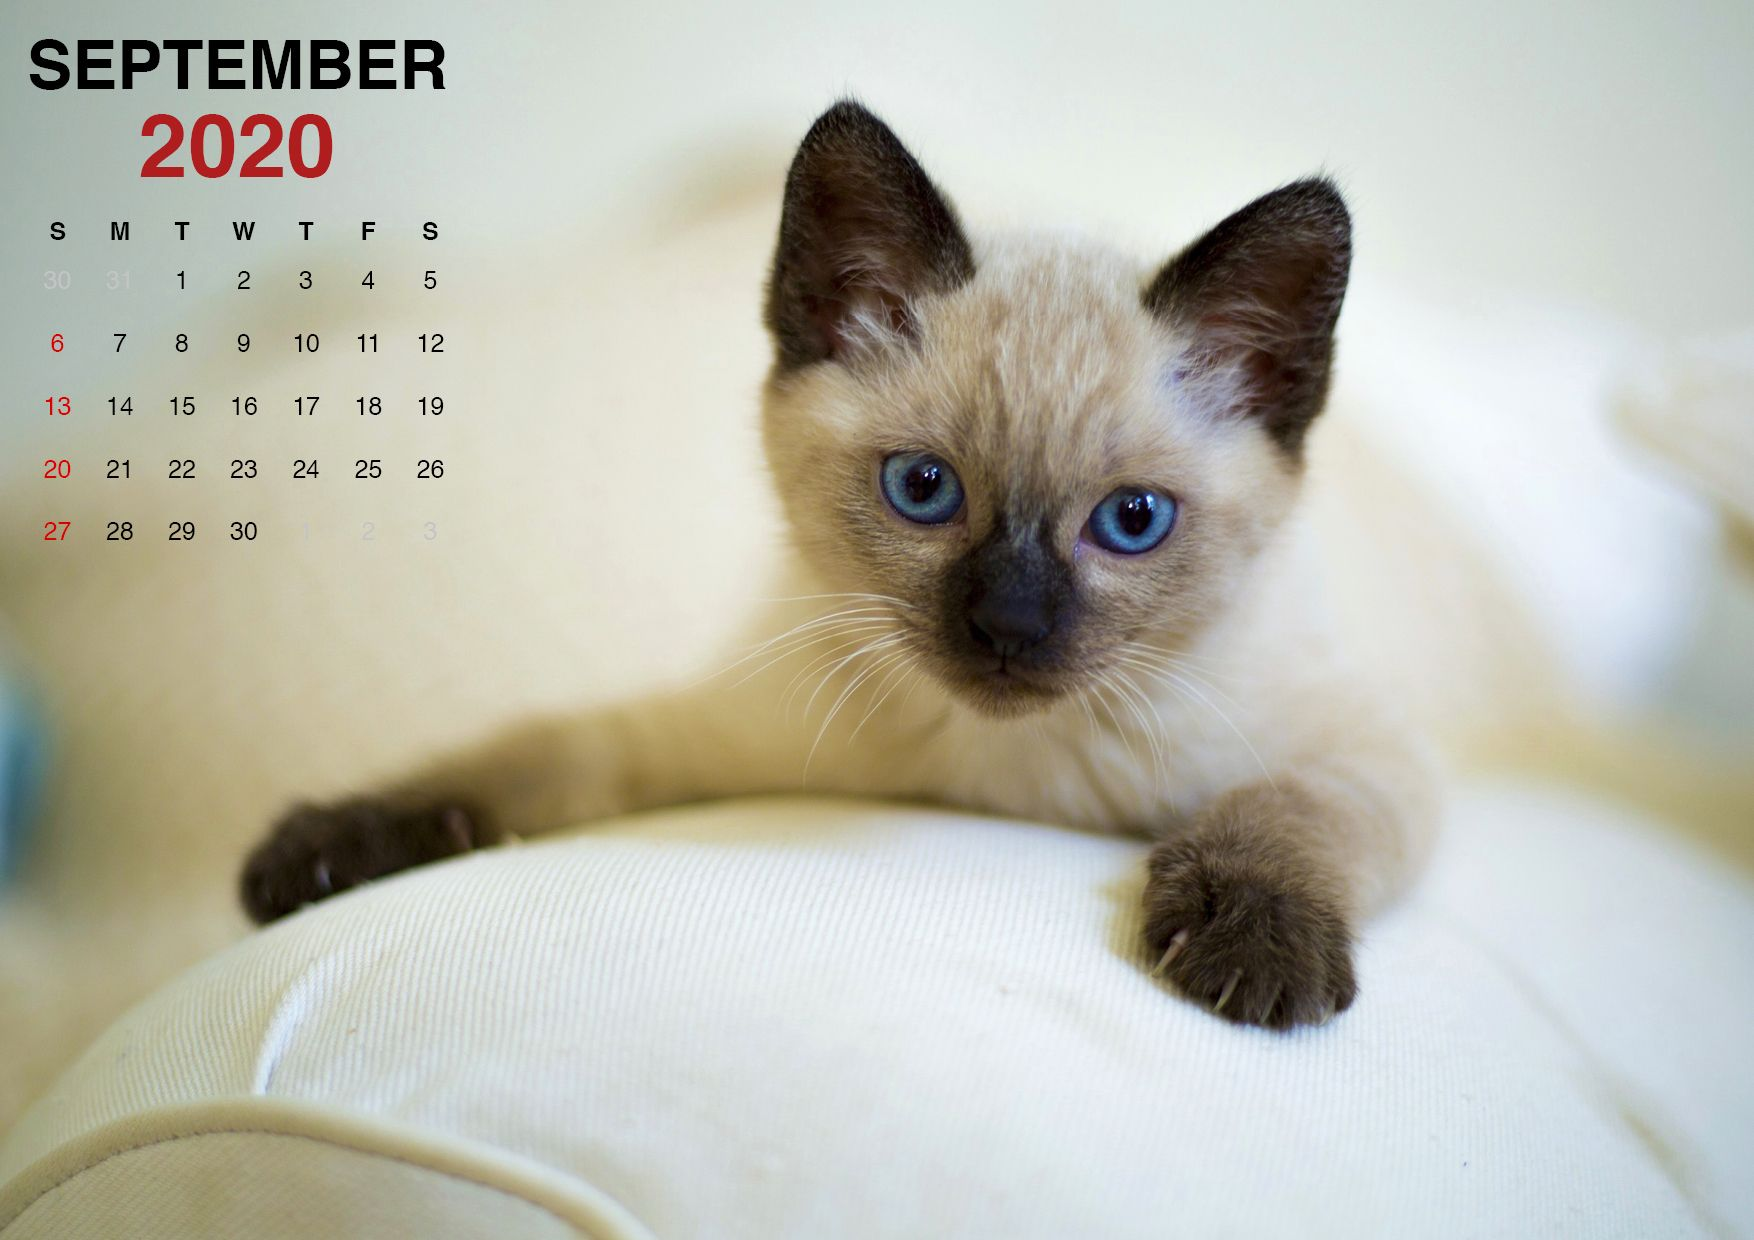 Kittens September 2020 Calendars Wallpapers In 2020 Cat Breeds Cats Cat Posters